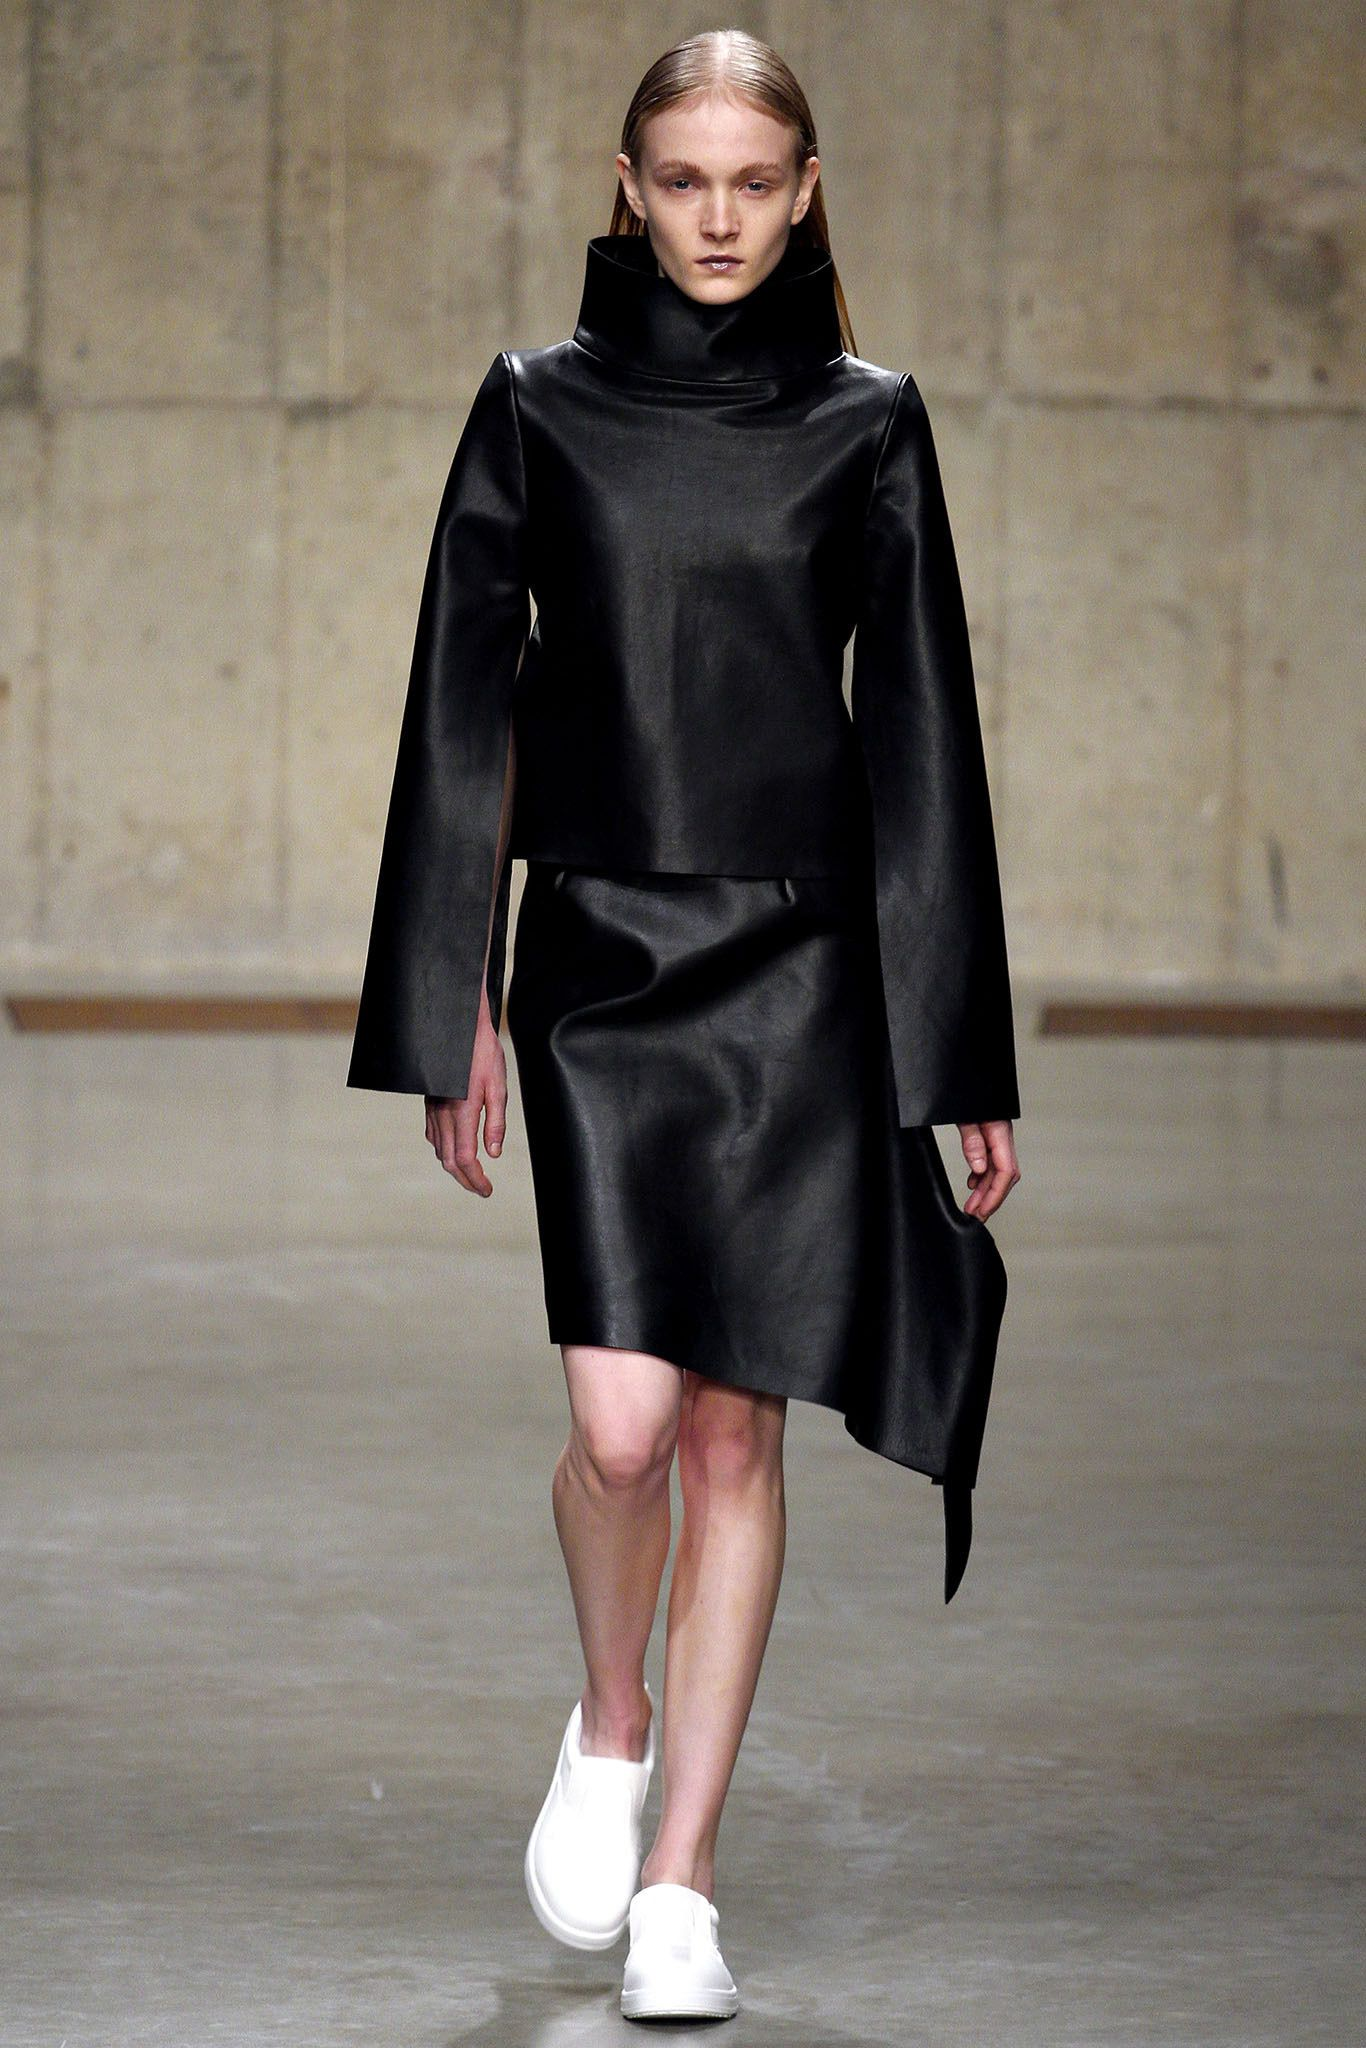 J.W.Anderson Fall 2013 Ready-to-Wear Fashion Show - Maja Salamon